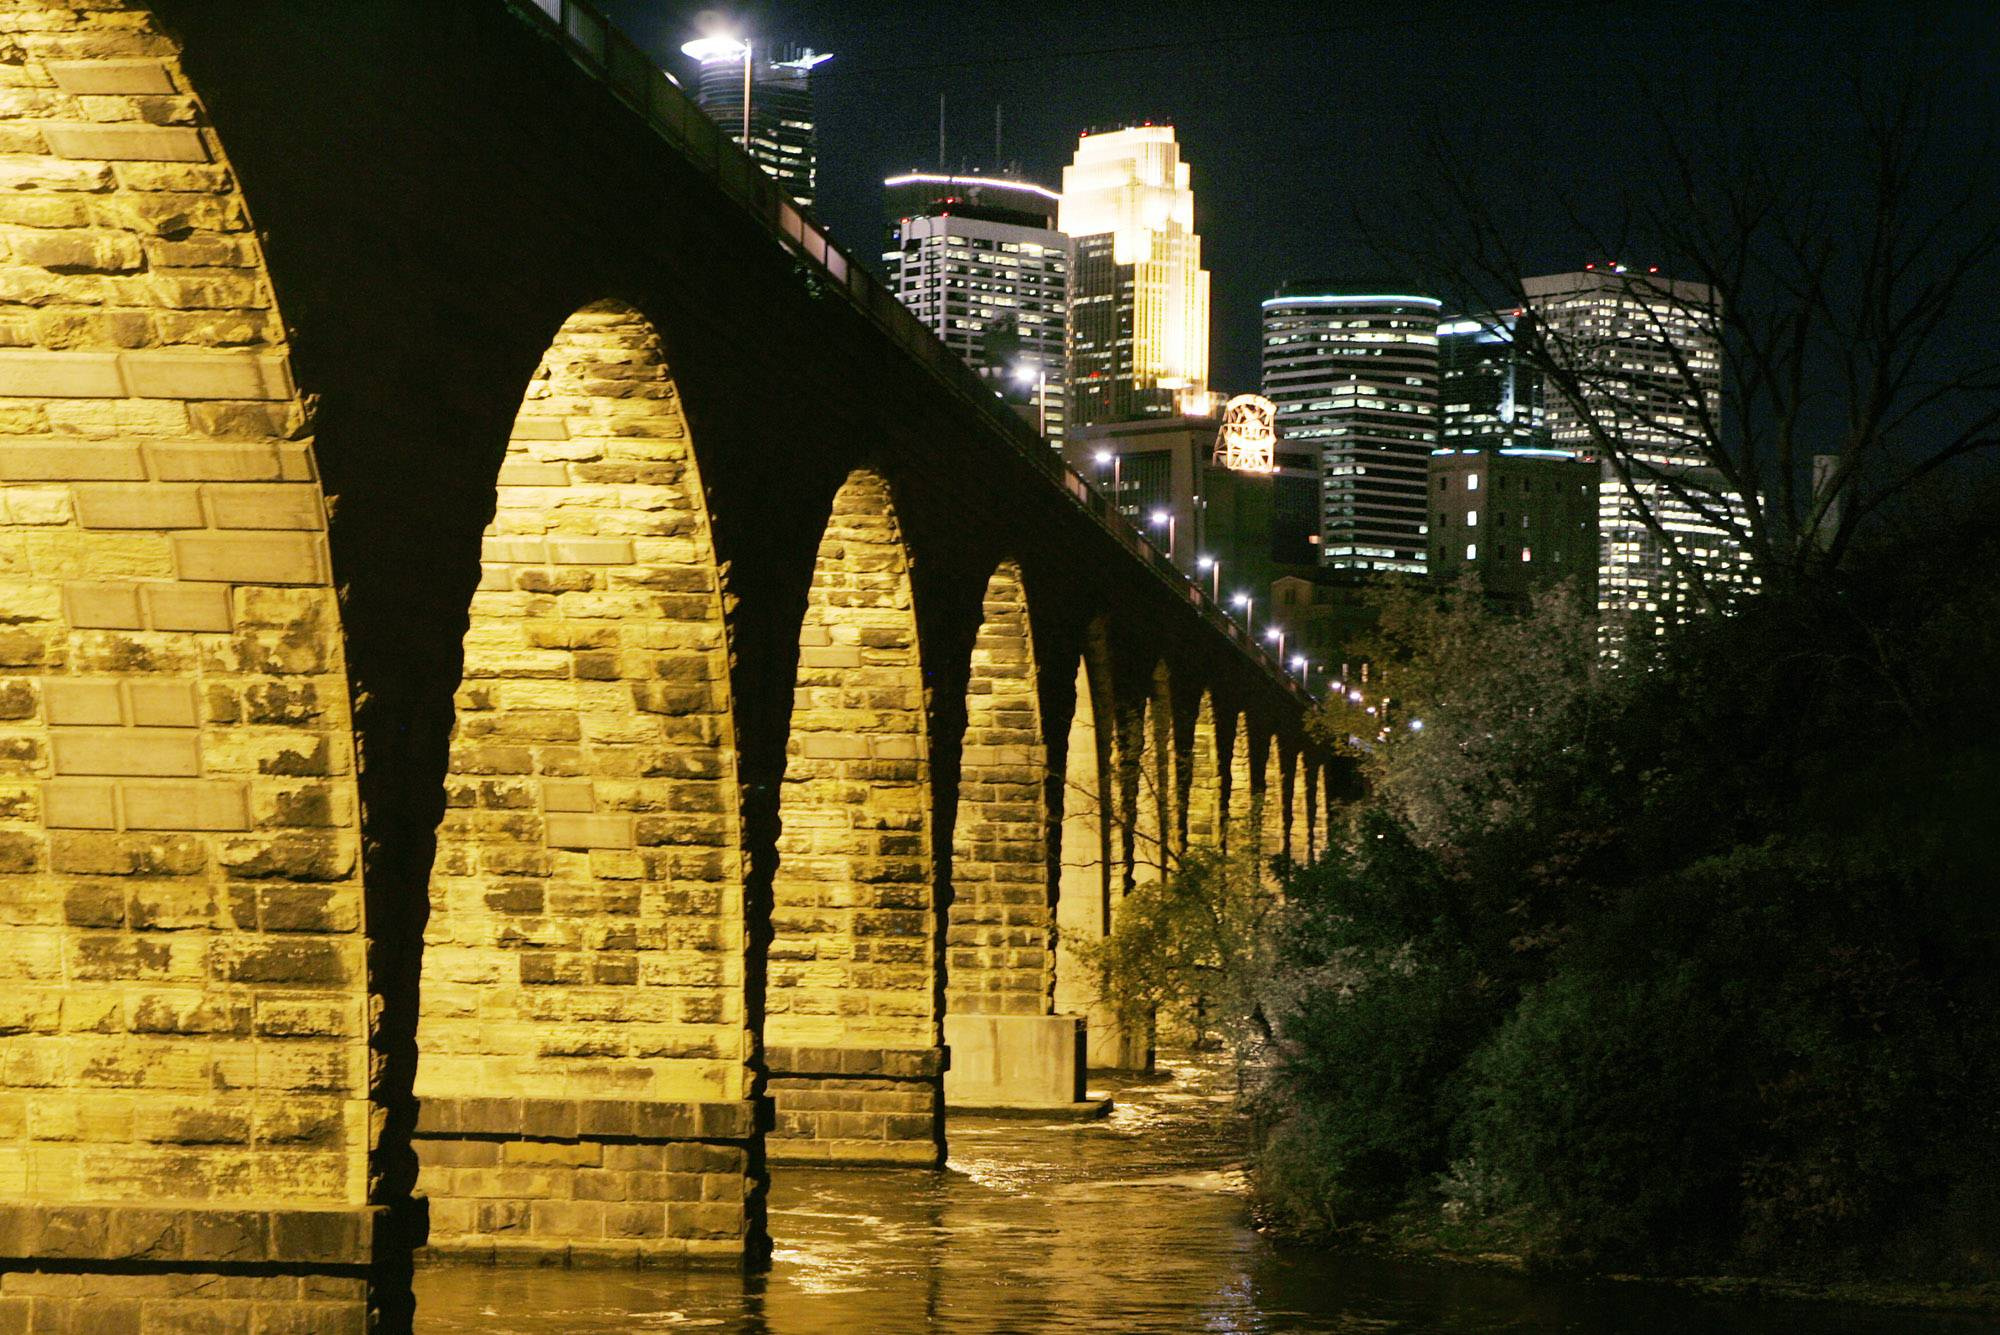 The Minneapolis skyline is illuminated in the background from the historic Stone Arch Bridge over the Mississippi River.